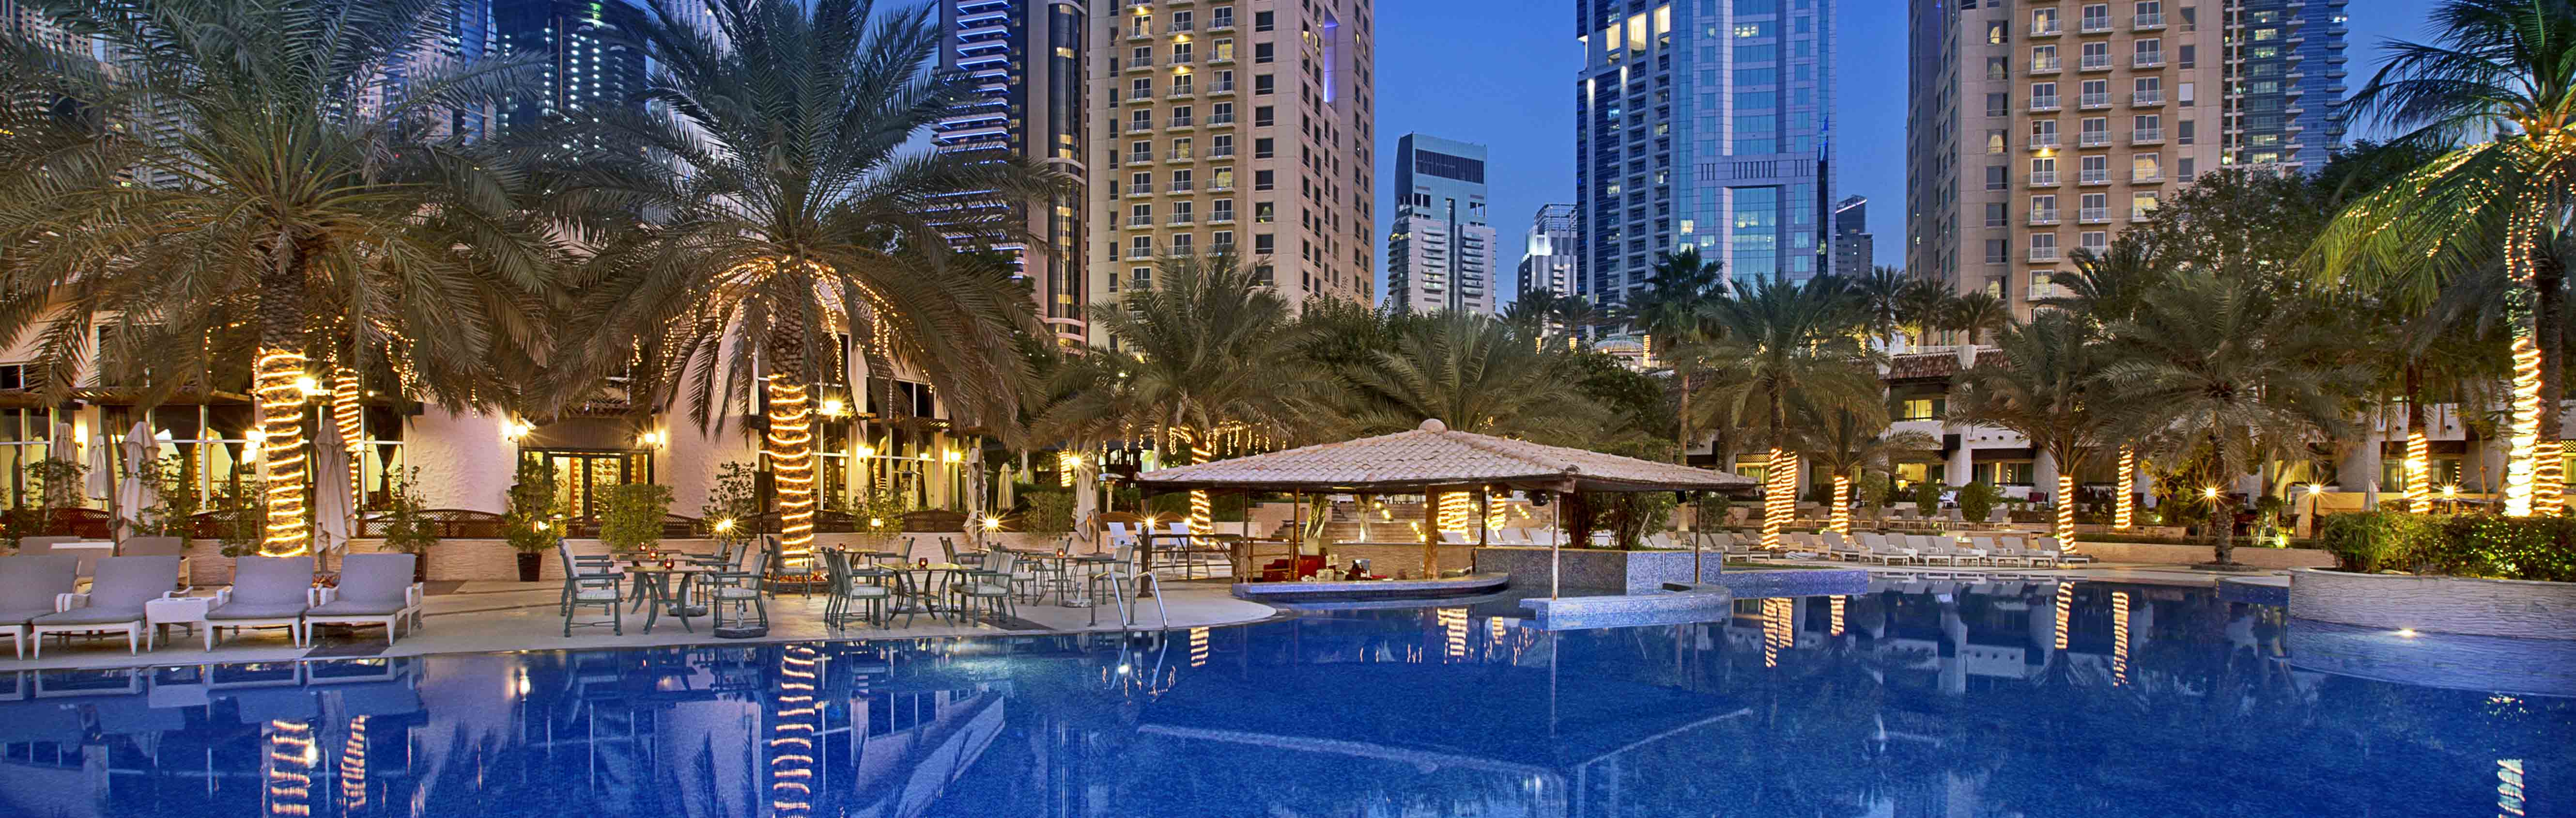 Habtoor Grand Resort Dubai